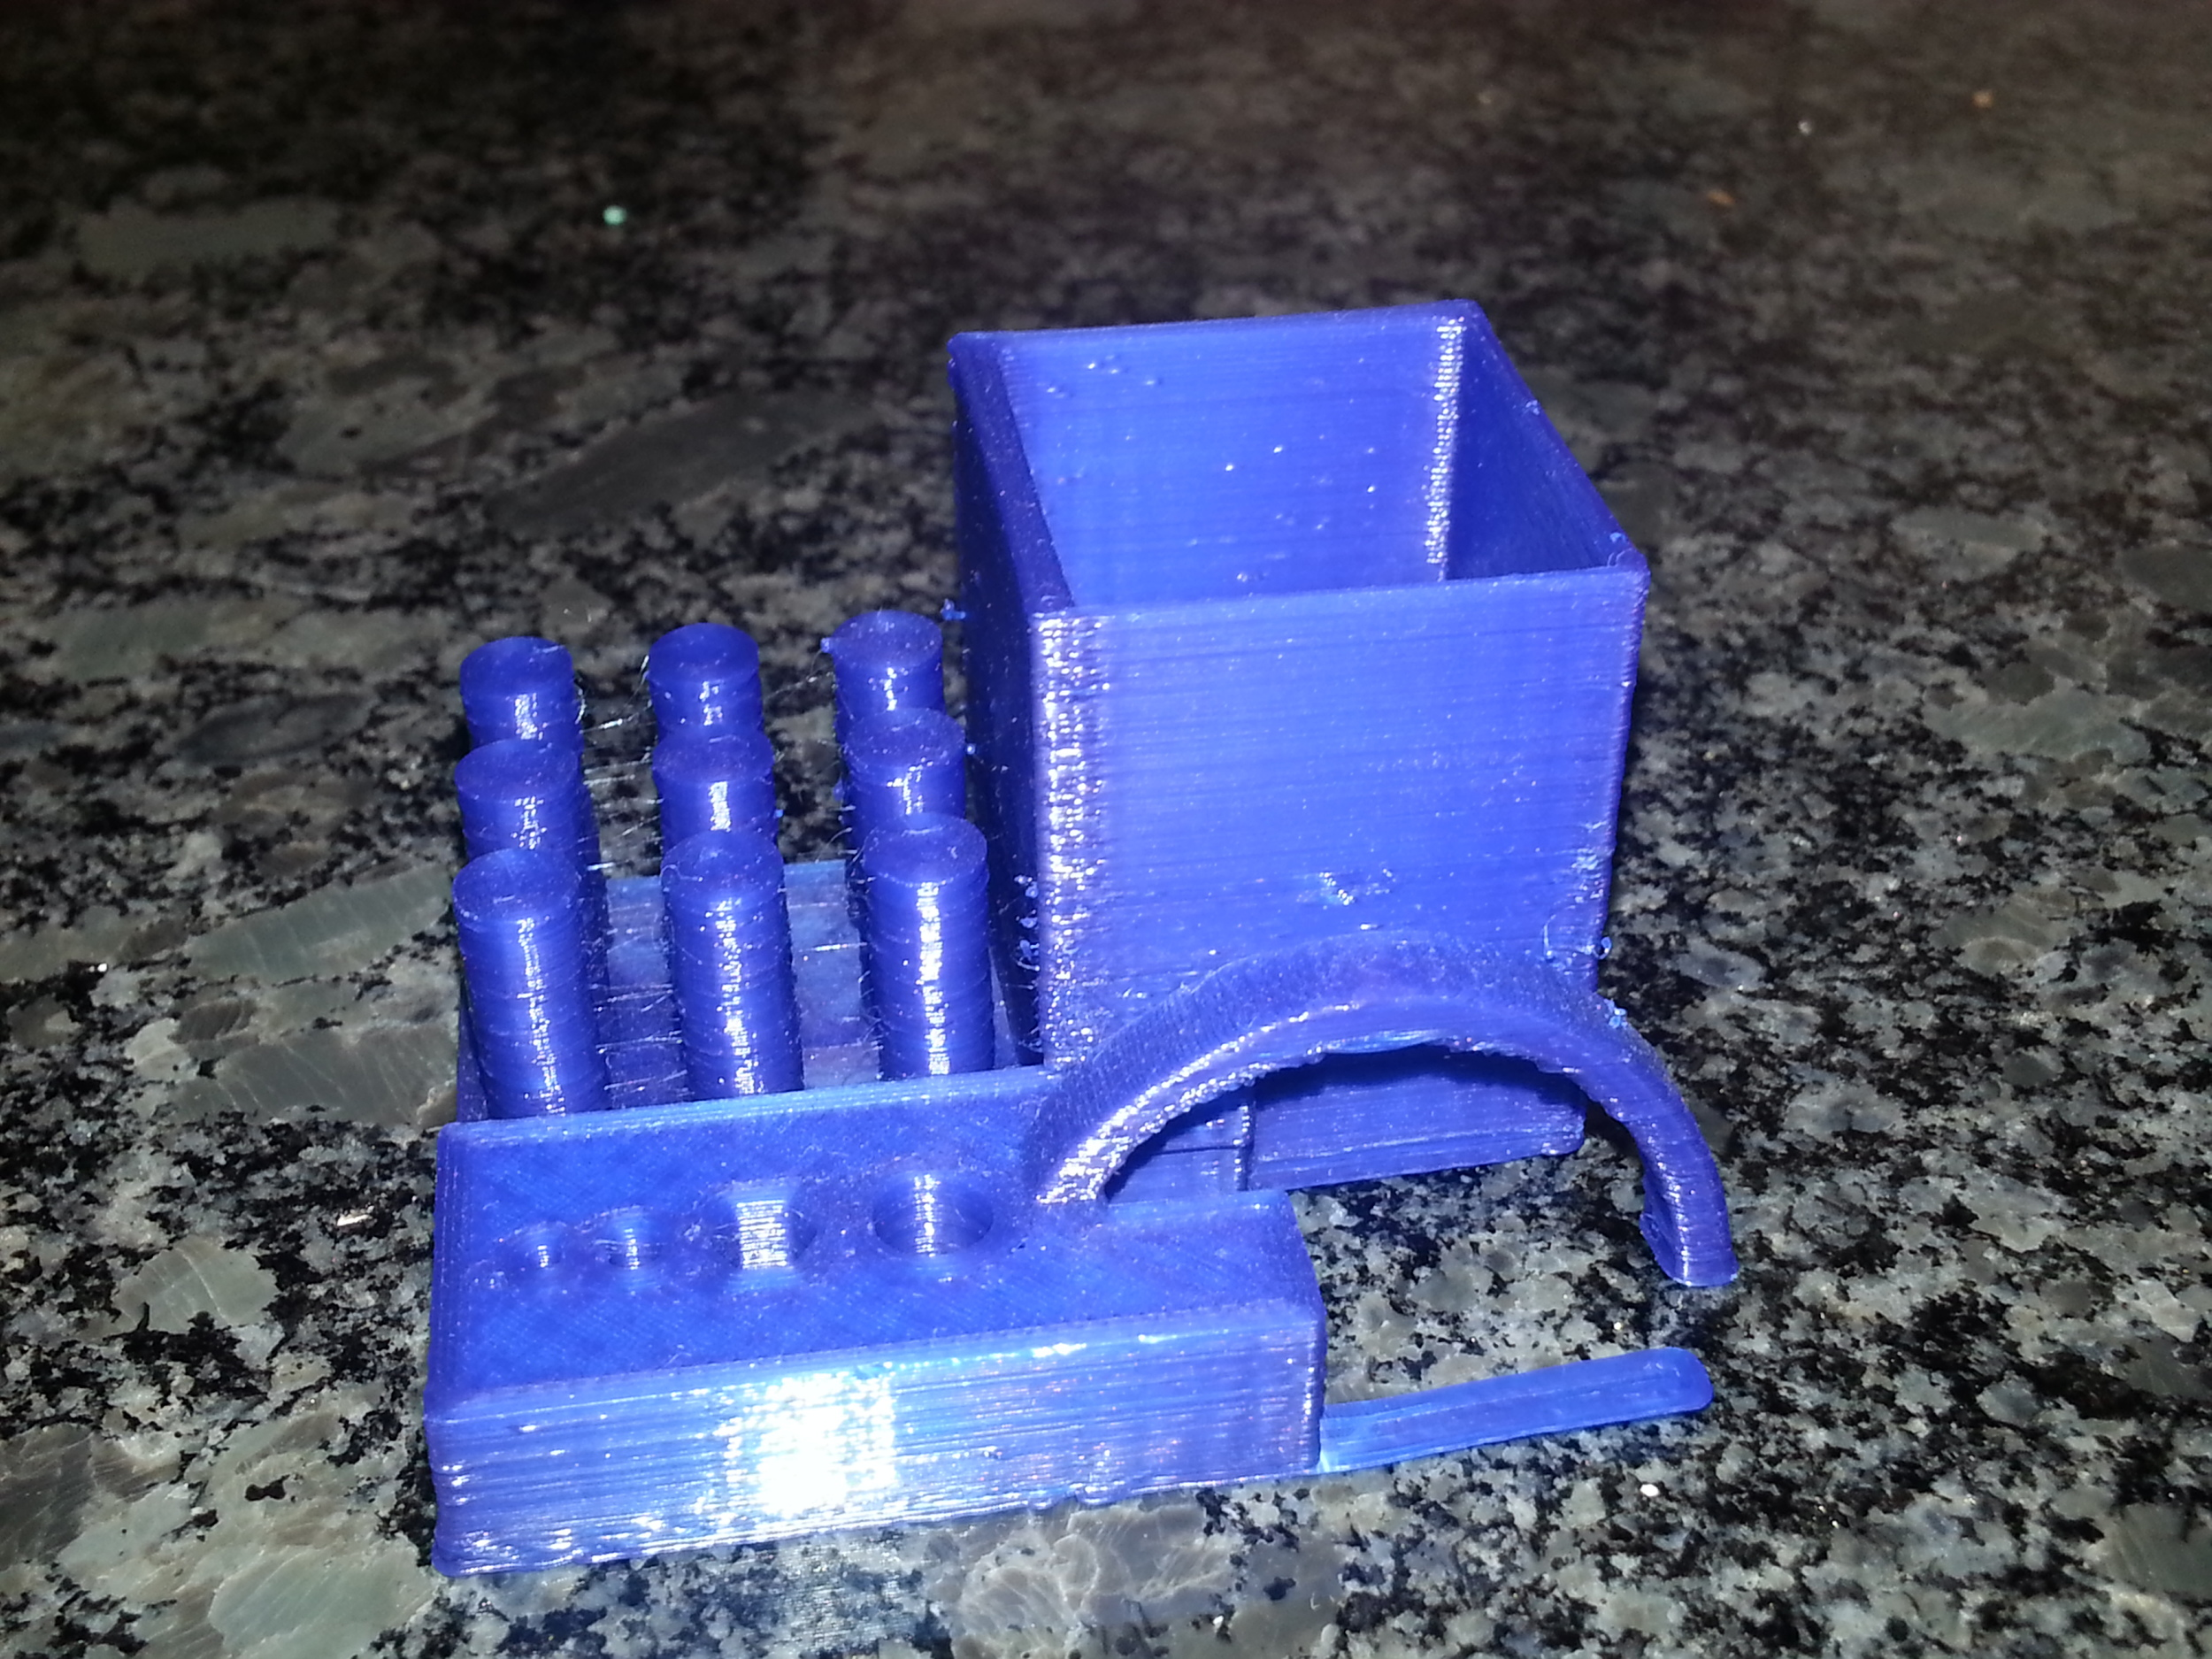 MAKE Torture Test   Printrbot Simple - 0.2mm layers - Blue PLA